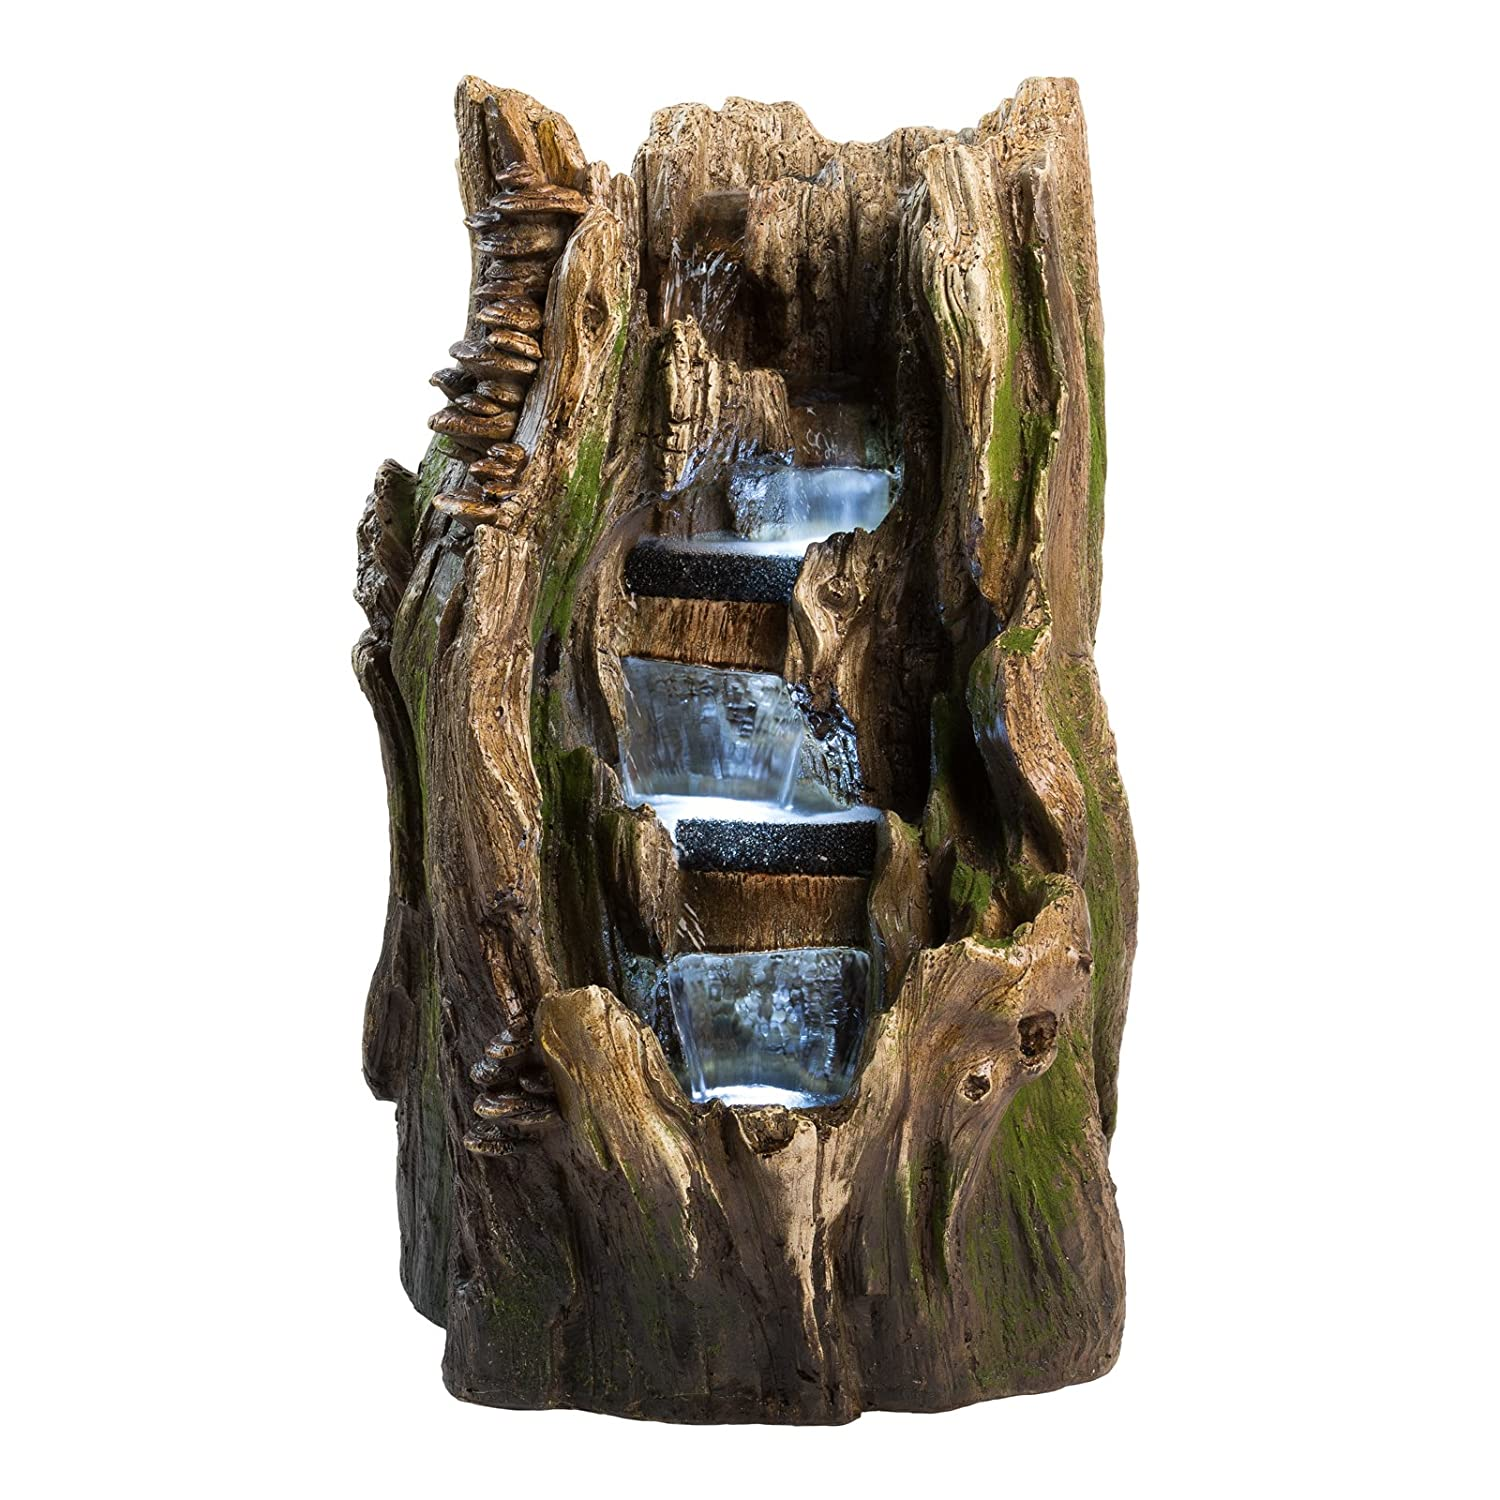 Outdoor Free Standing Fountains For Garden Decoration